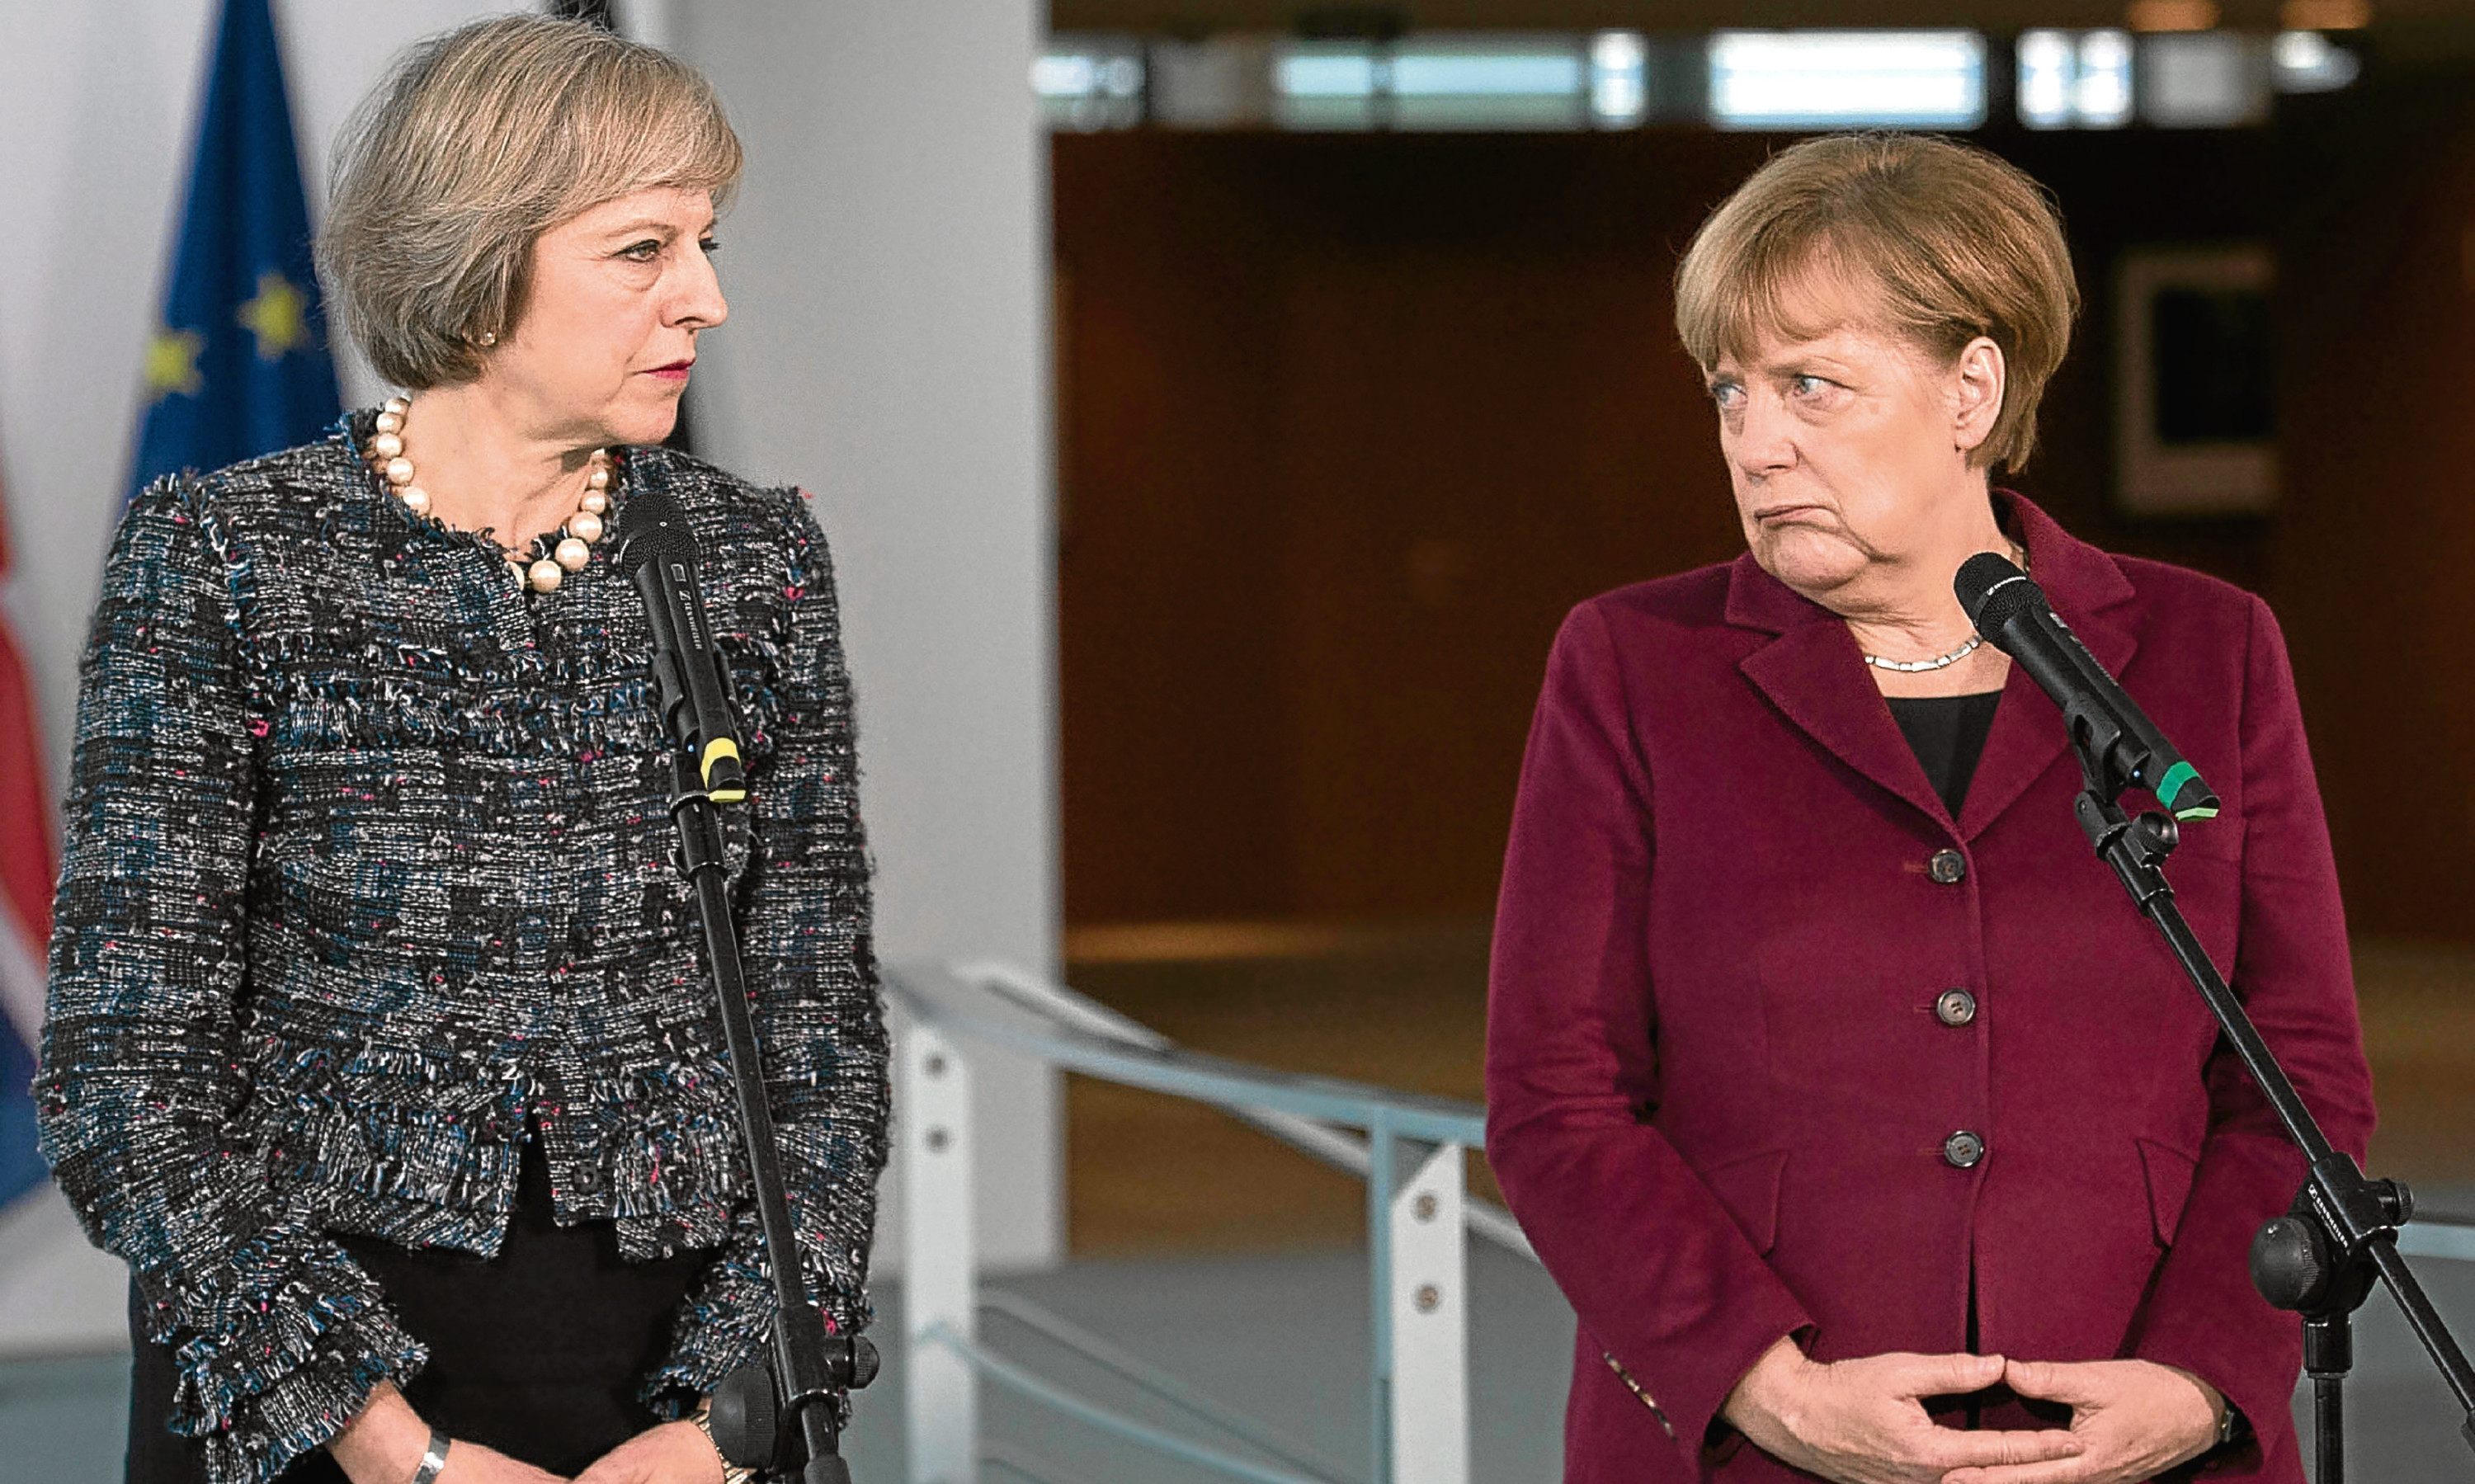 Prime Minister Theresa May, pictured with German Chancellor Angela Merkel, seems to have moved right in her European views.